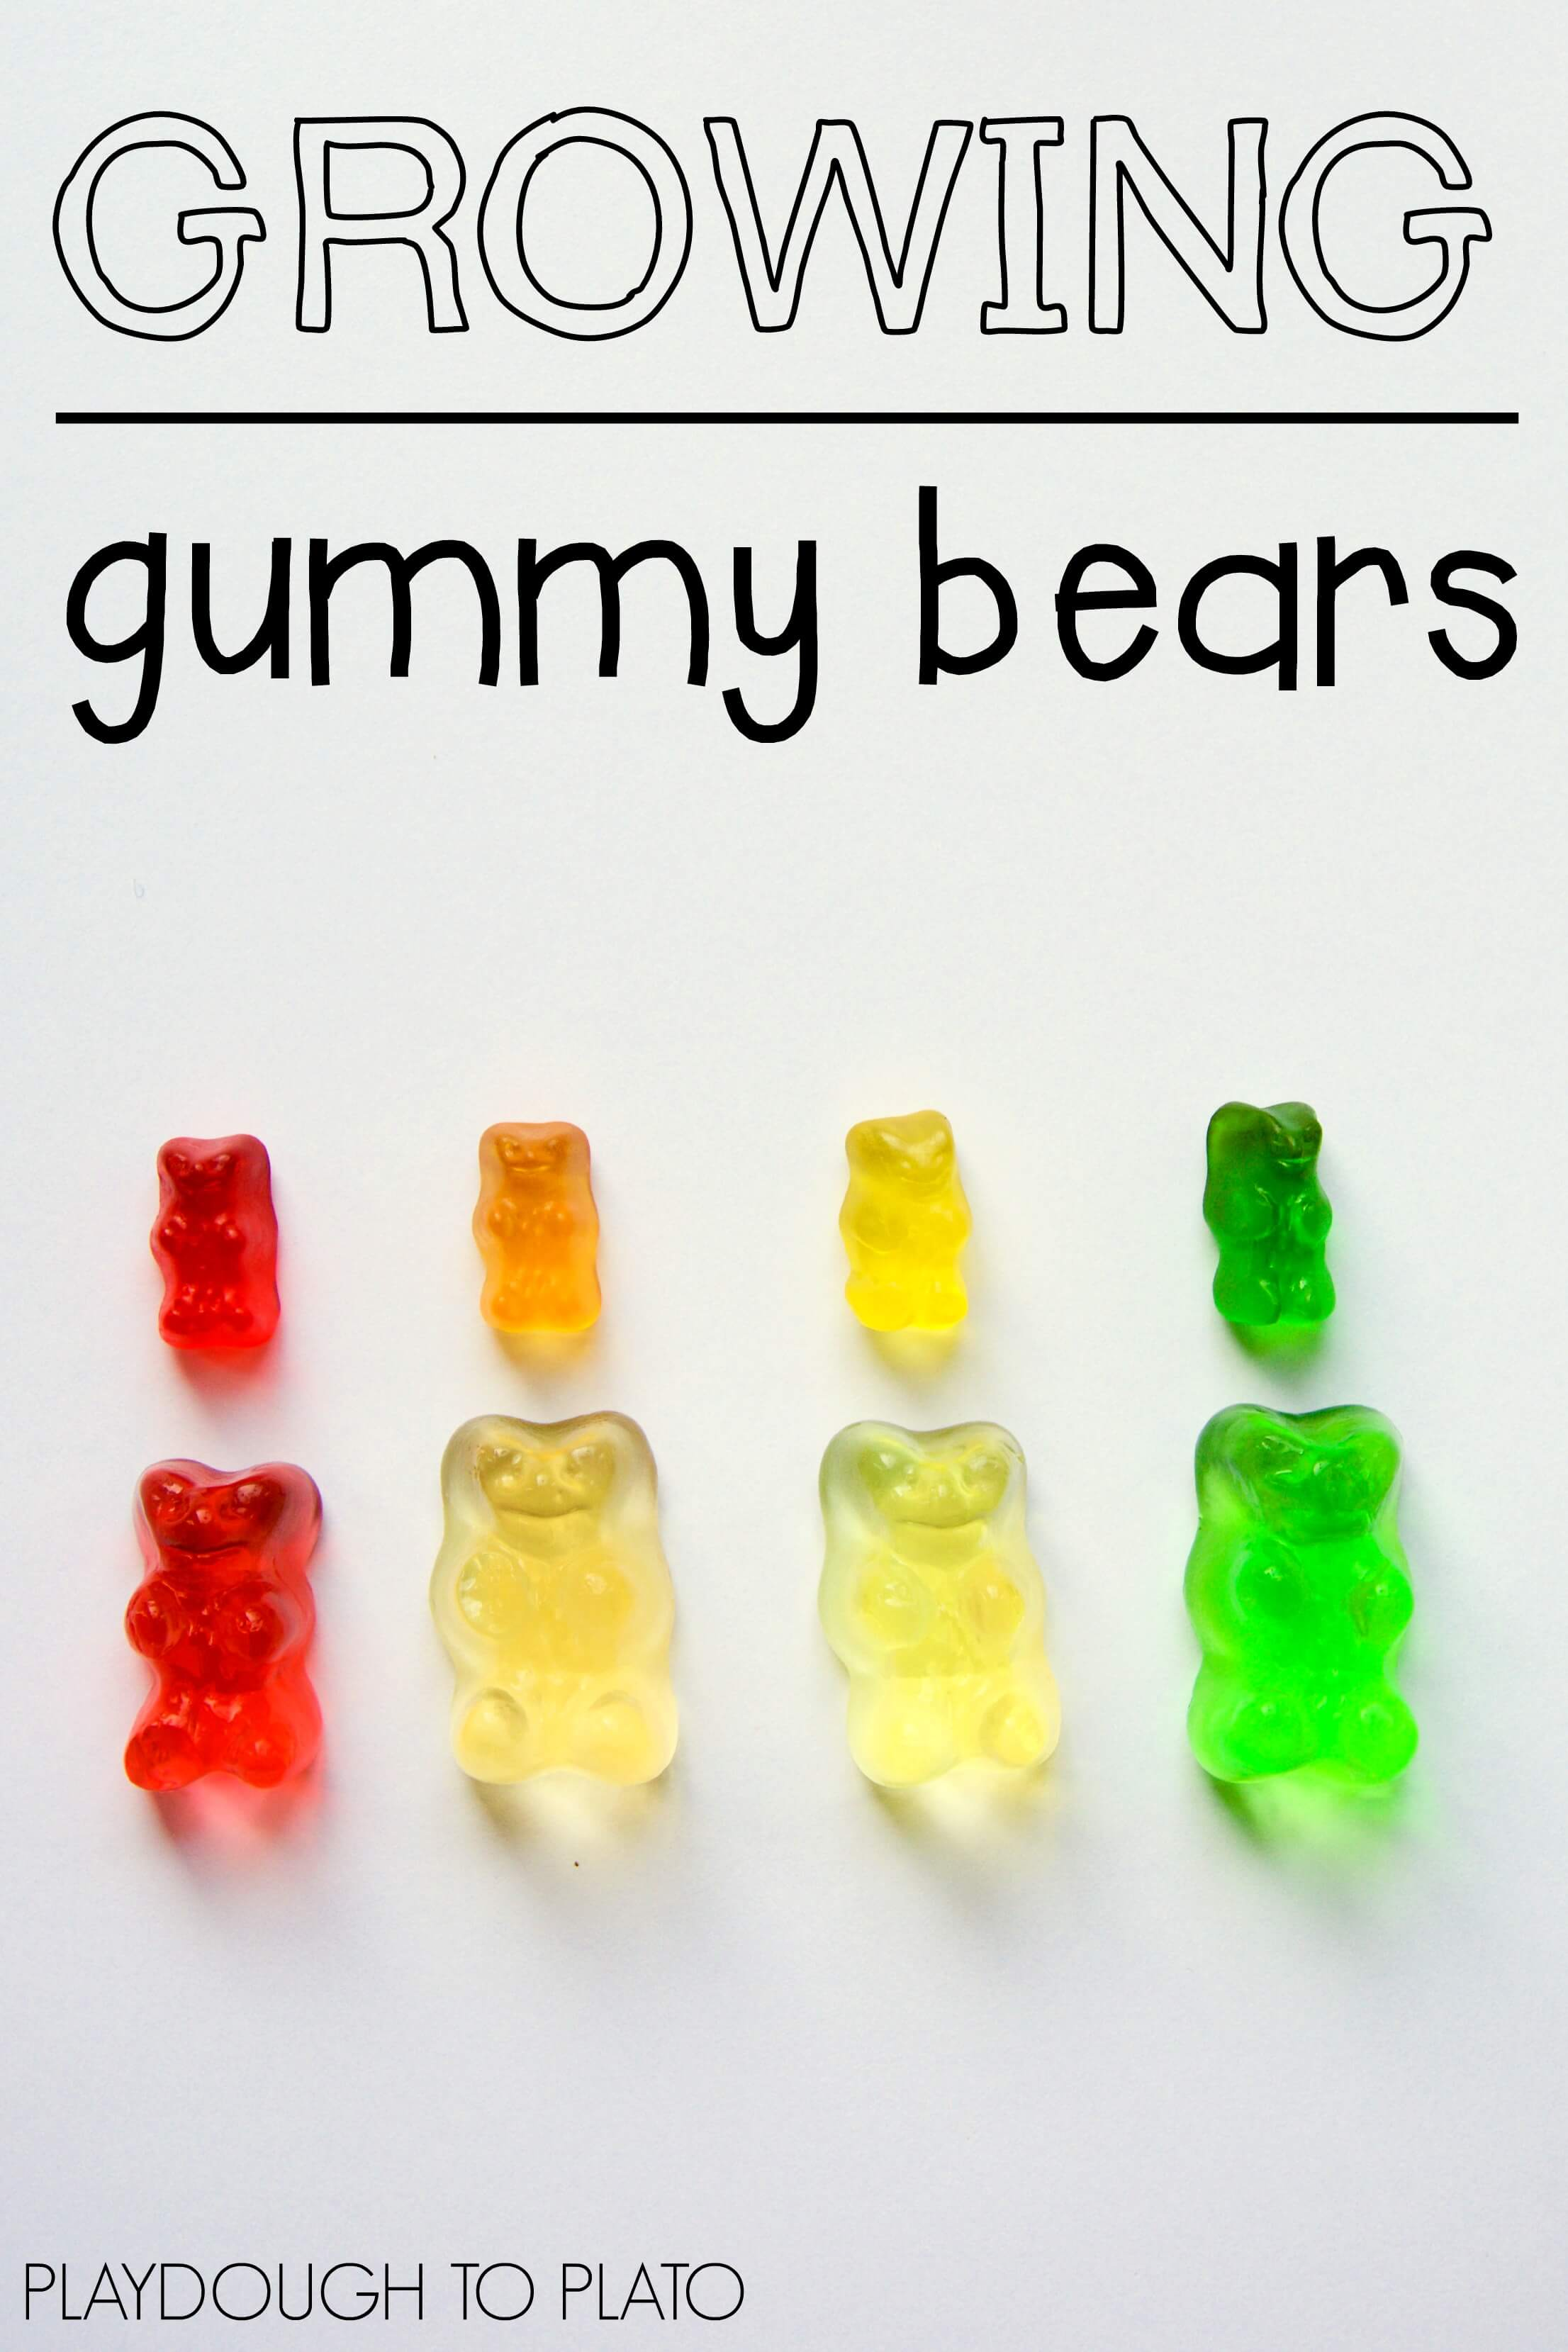 osmosis in gummy bears Investigating the effect of different concentrations of glucose on the percent change in mass of gummy bears according to their respective colours in this experiment osmosis is the main process taking place.